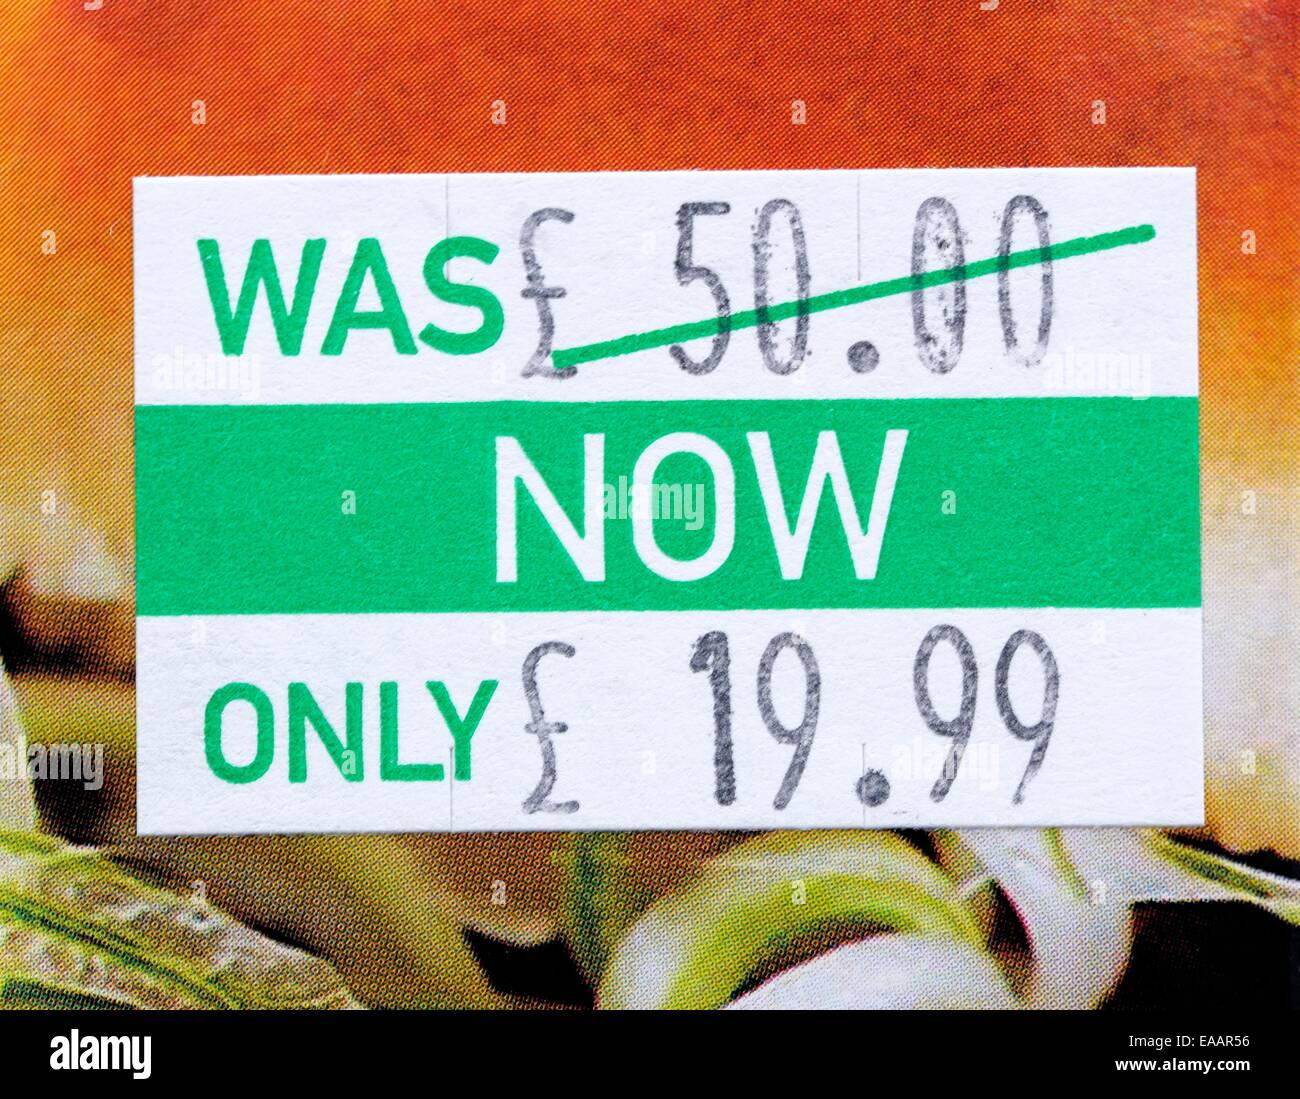 A was now pricing label showing a reduction of £50 to £19.99 - Stock Image